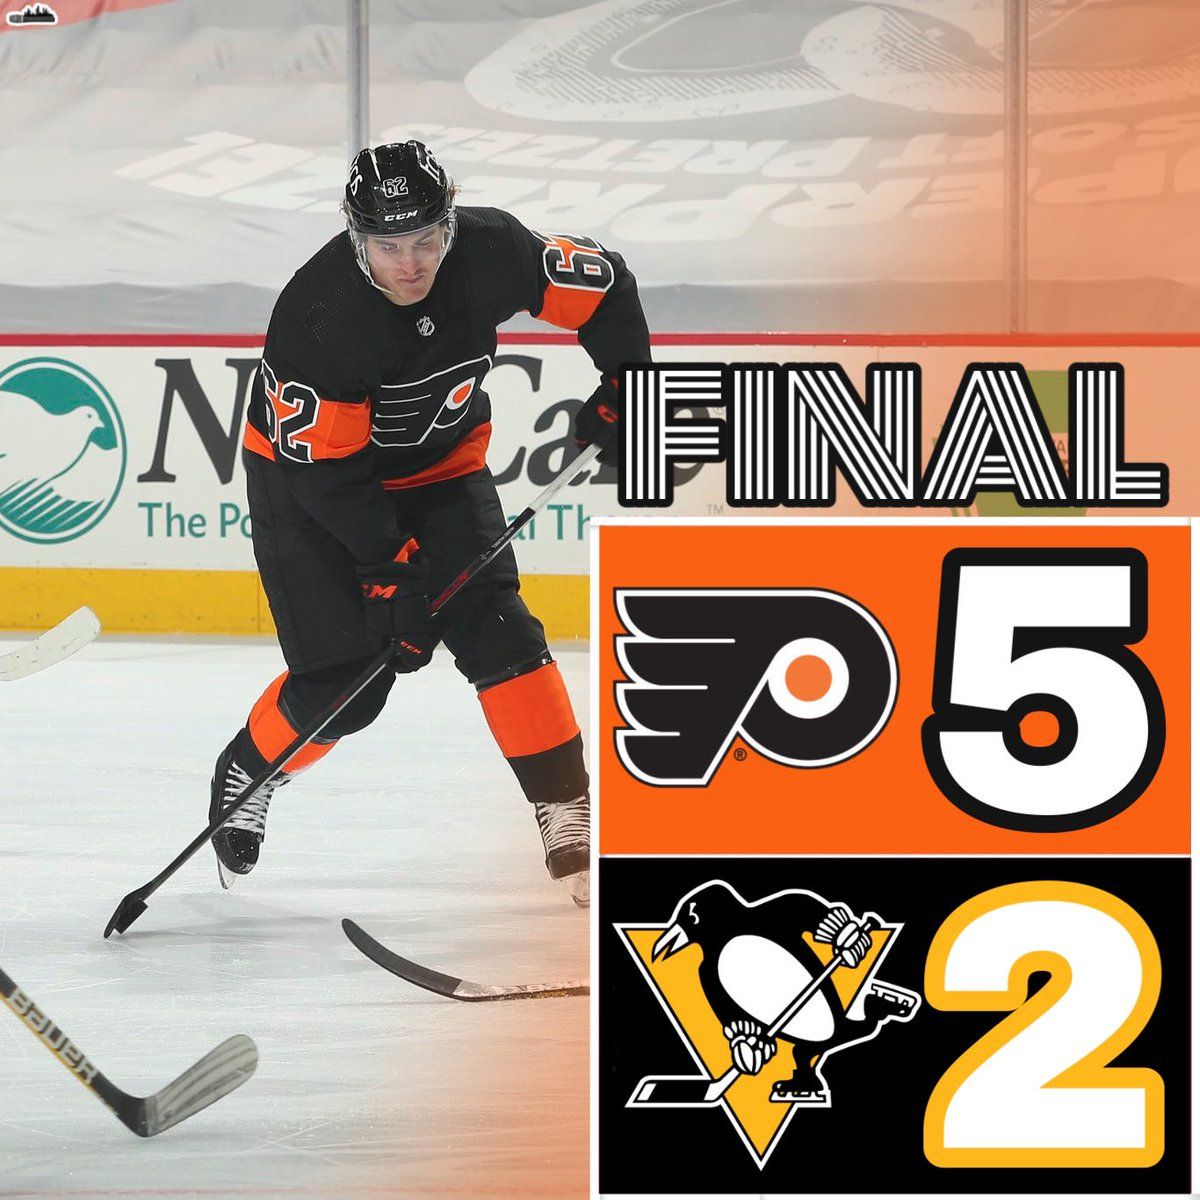 ORANGE AND THE BLACK  . #Flyers advance to 2-0-0 as they beat the #Penguins again 5-2! #AnytimeAnywhere